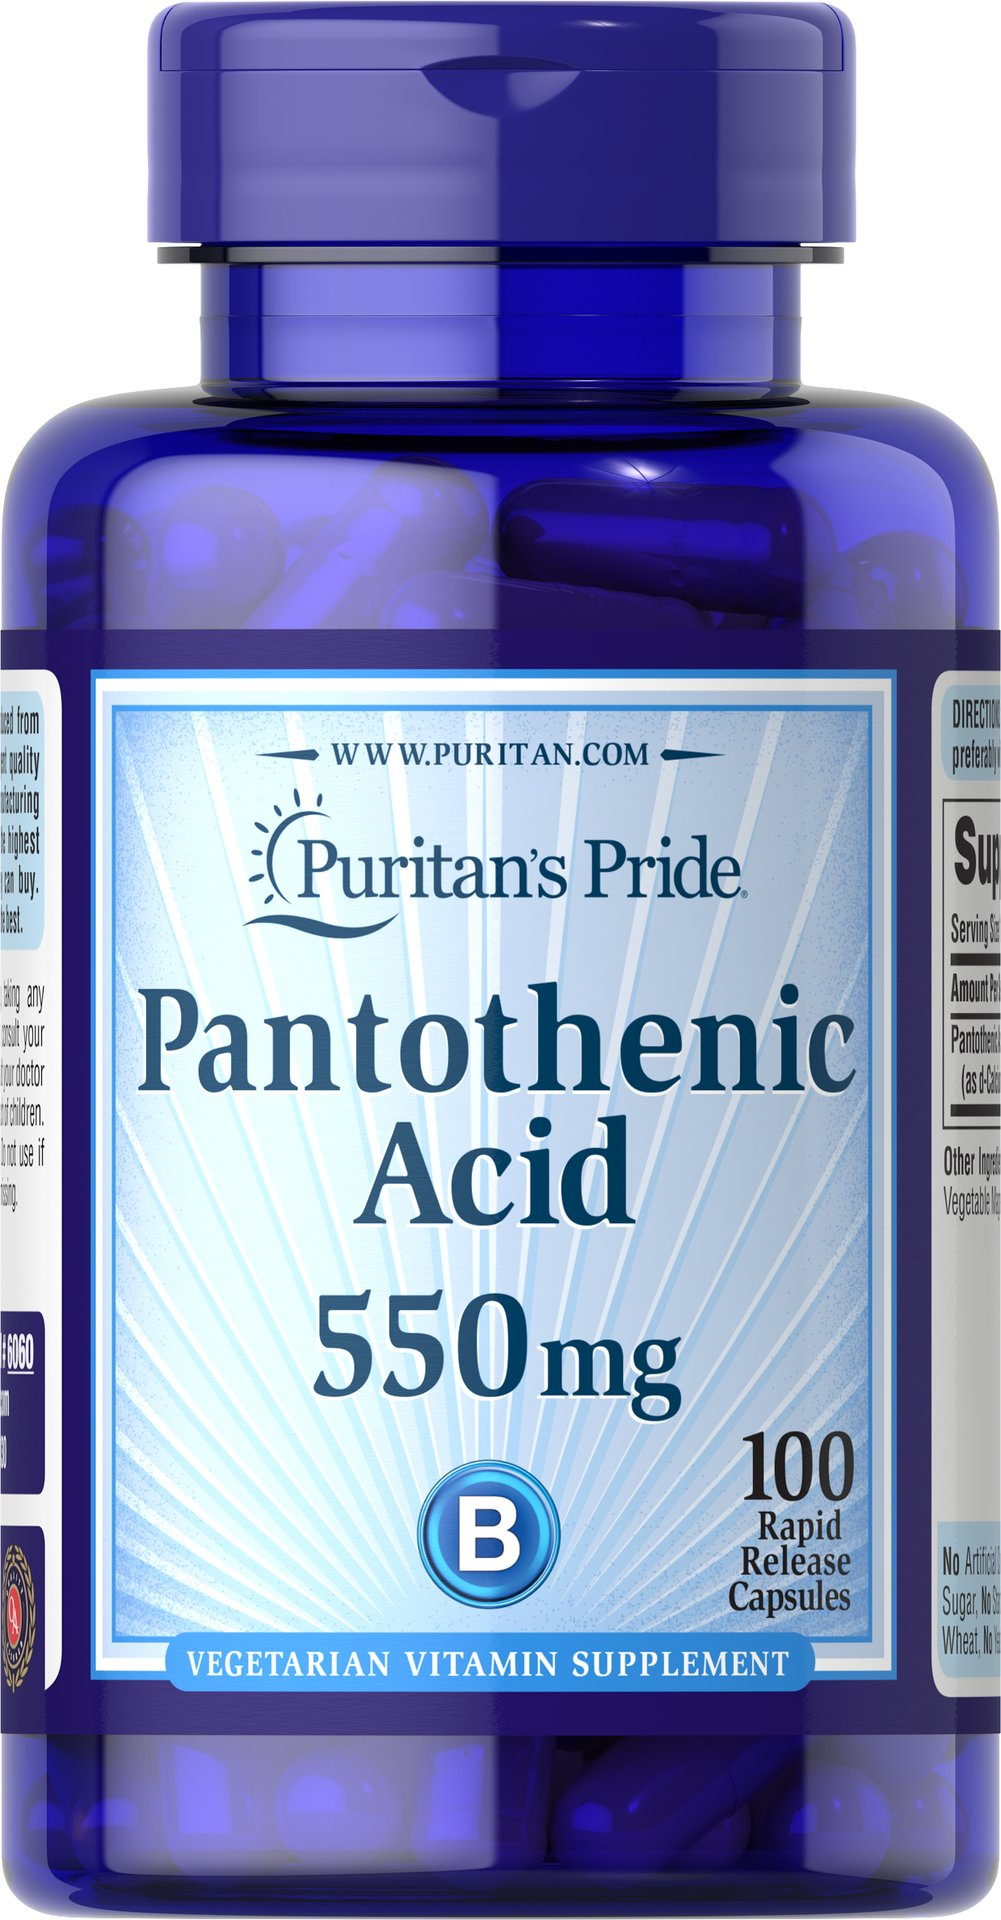 Pantothenic Acid 500 mg Timed Release <p>Pantothenic Acid is needed for normal functioning of the gastrointestinal tract and is required by all of the cells in the body.**  It also helps convert fats, carbohydrates, and proteins into energy.**  Available in (100 mg) & (200 mg) tablets.  Also available in (500 mg) TIME RELEASE Tablets.</p> 100 Tablets 500 mg $11.29